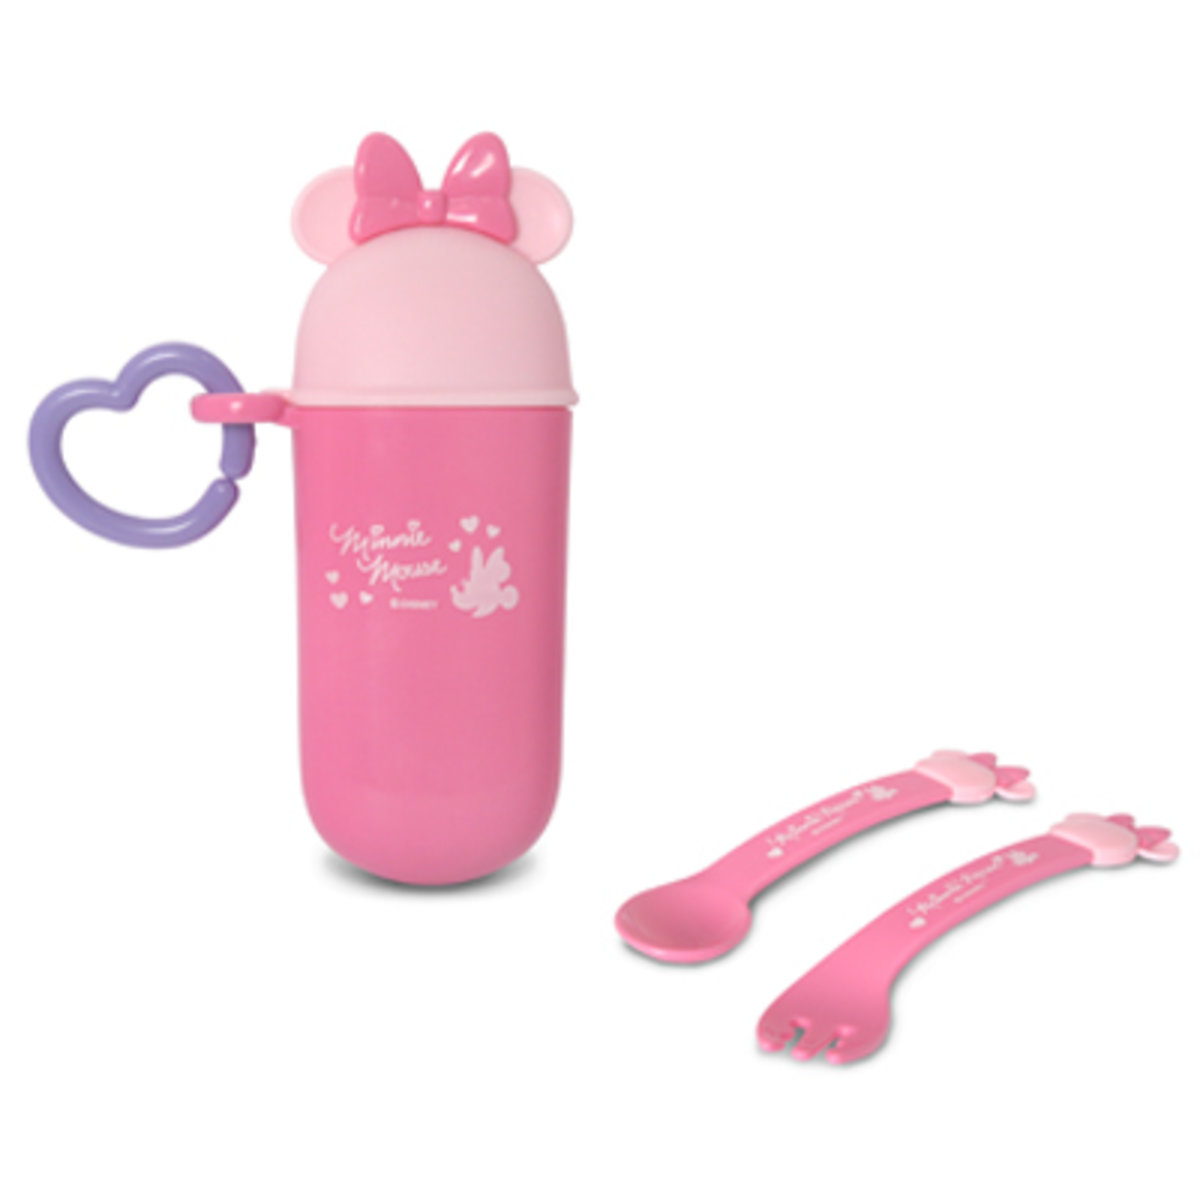 SPOON AND FORK W CONTAINER-MINNIE [Licensed by Disney]